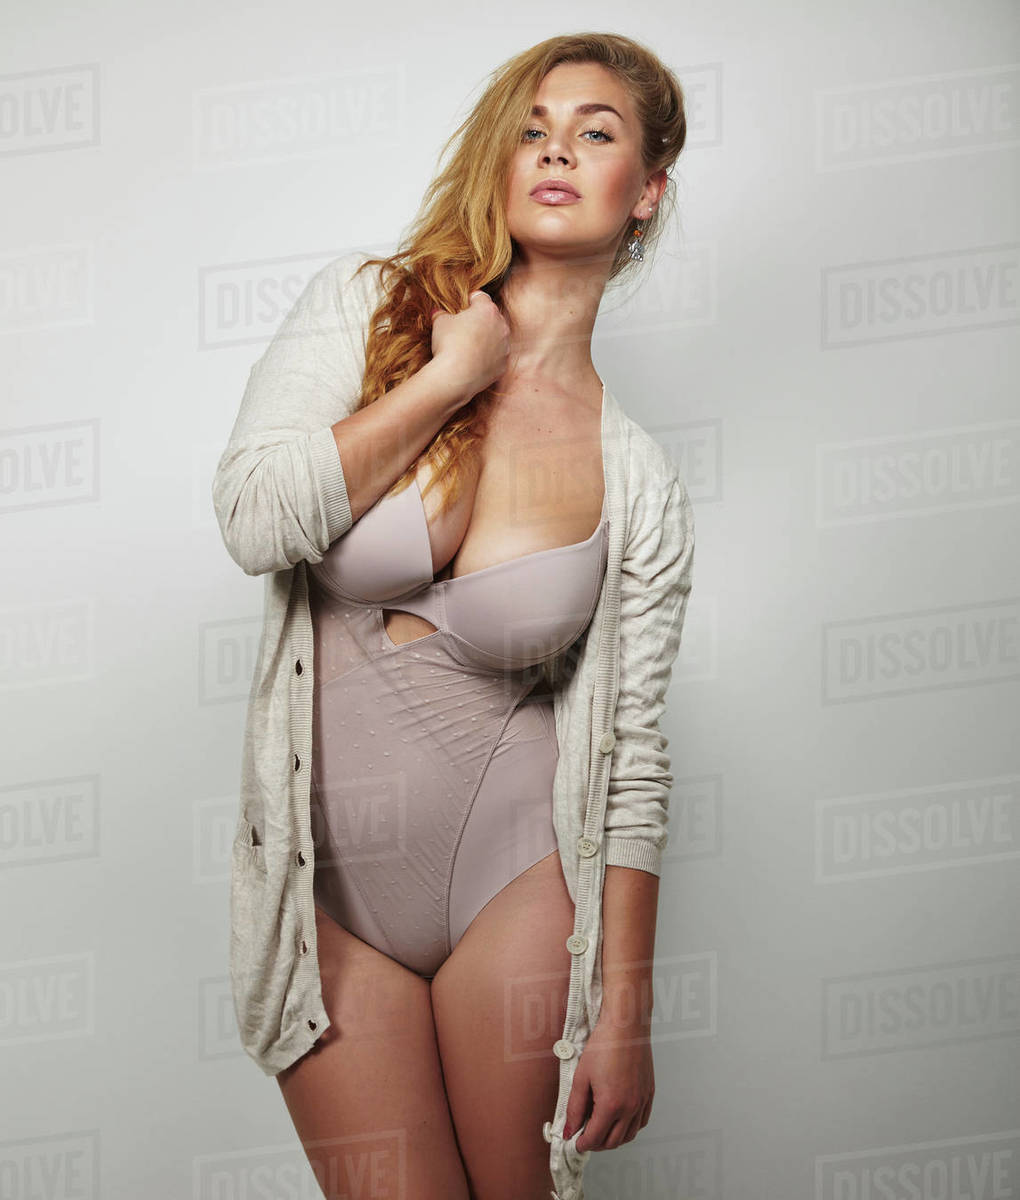 c3e15837026 Overweight woman in underwear posing confidently against grey background. Plus  size model in body stocking looking at camera.